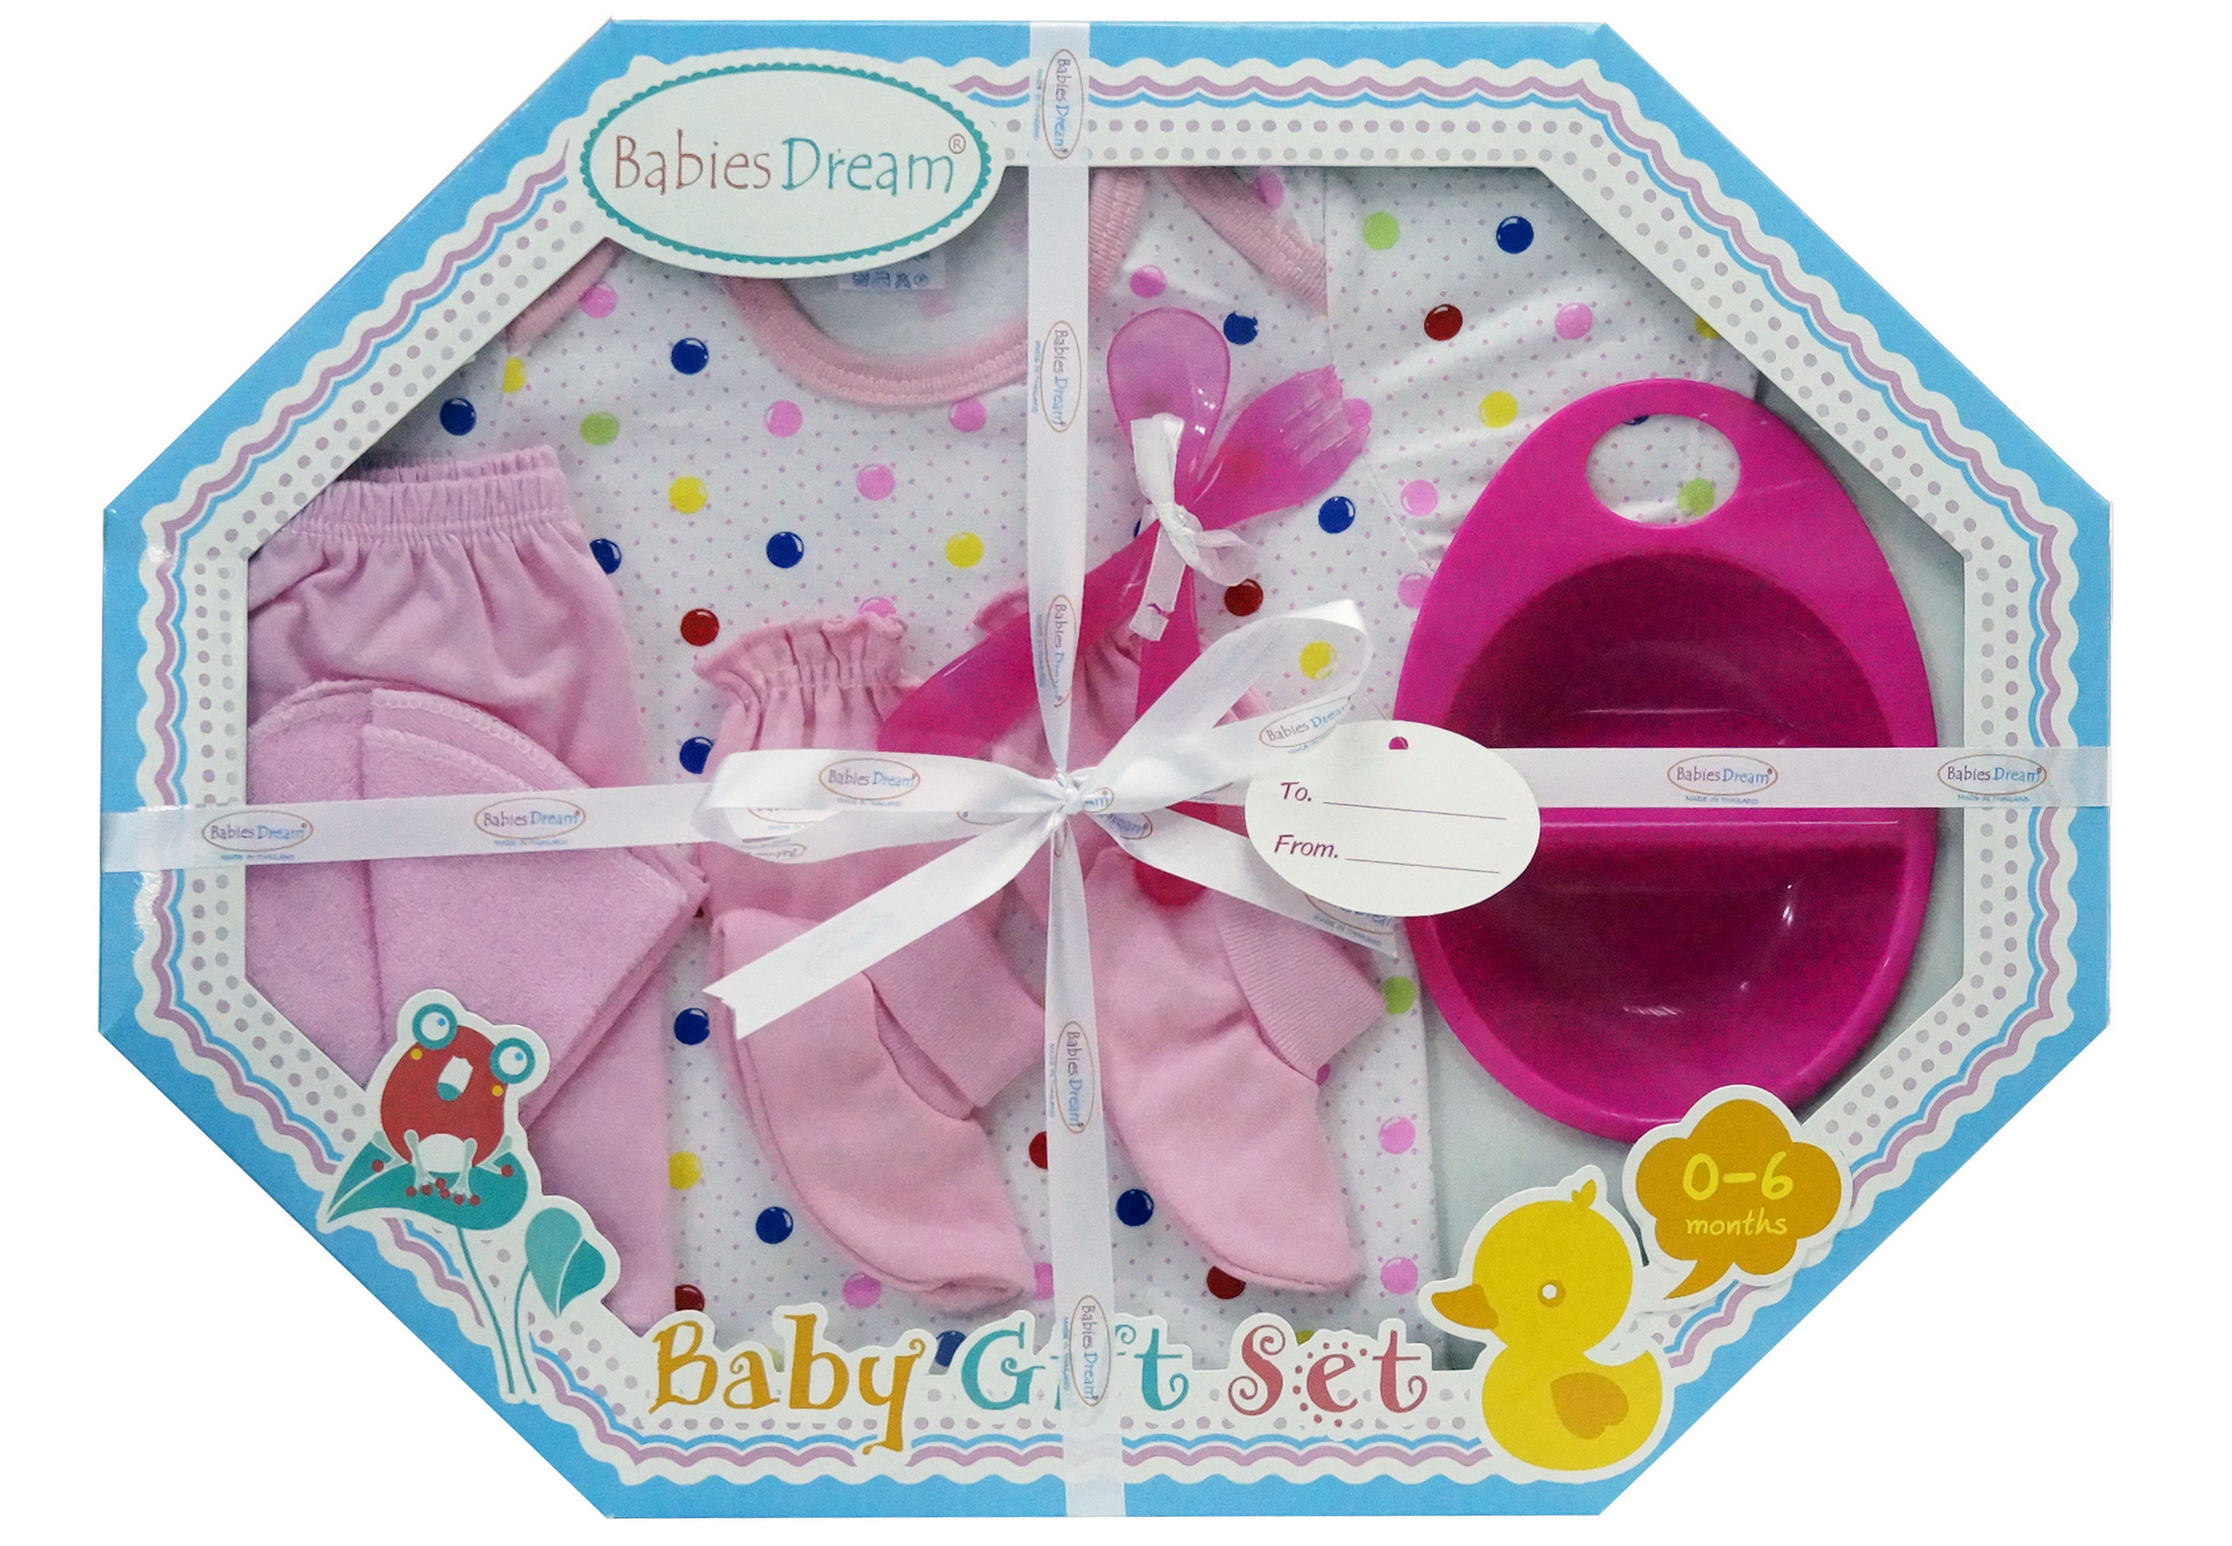 8 Pieces baby gift set